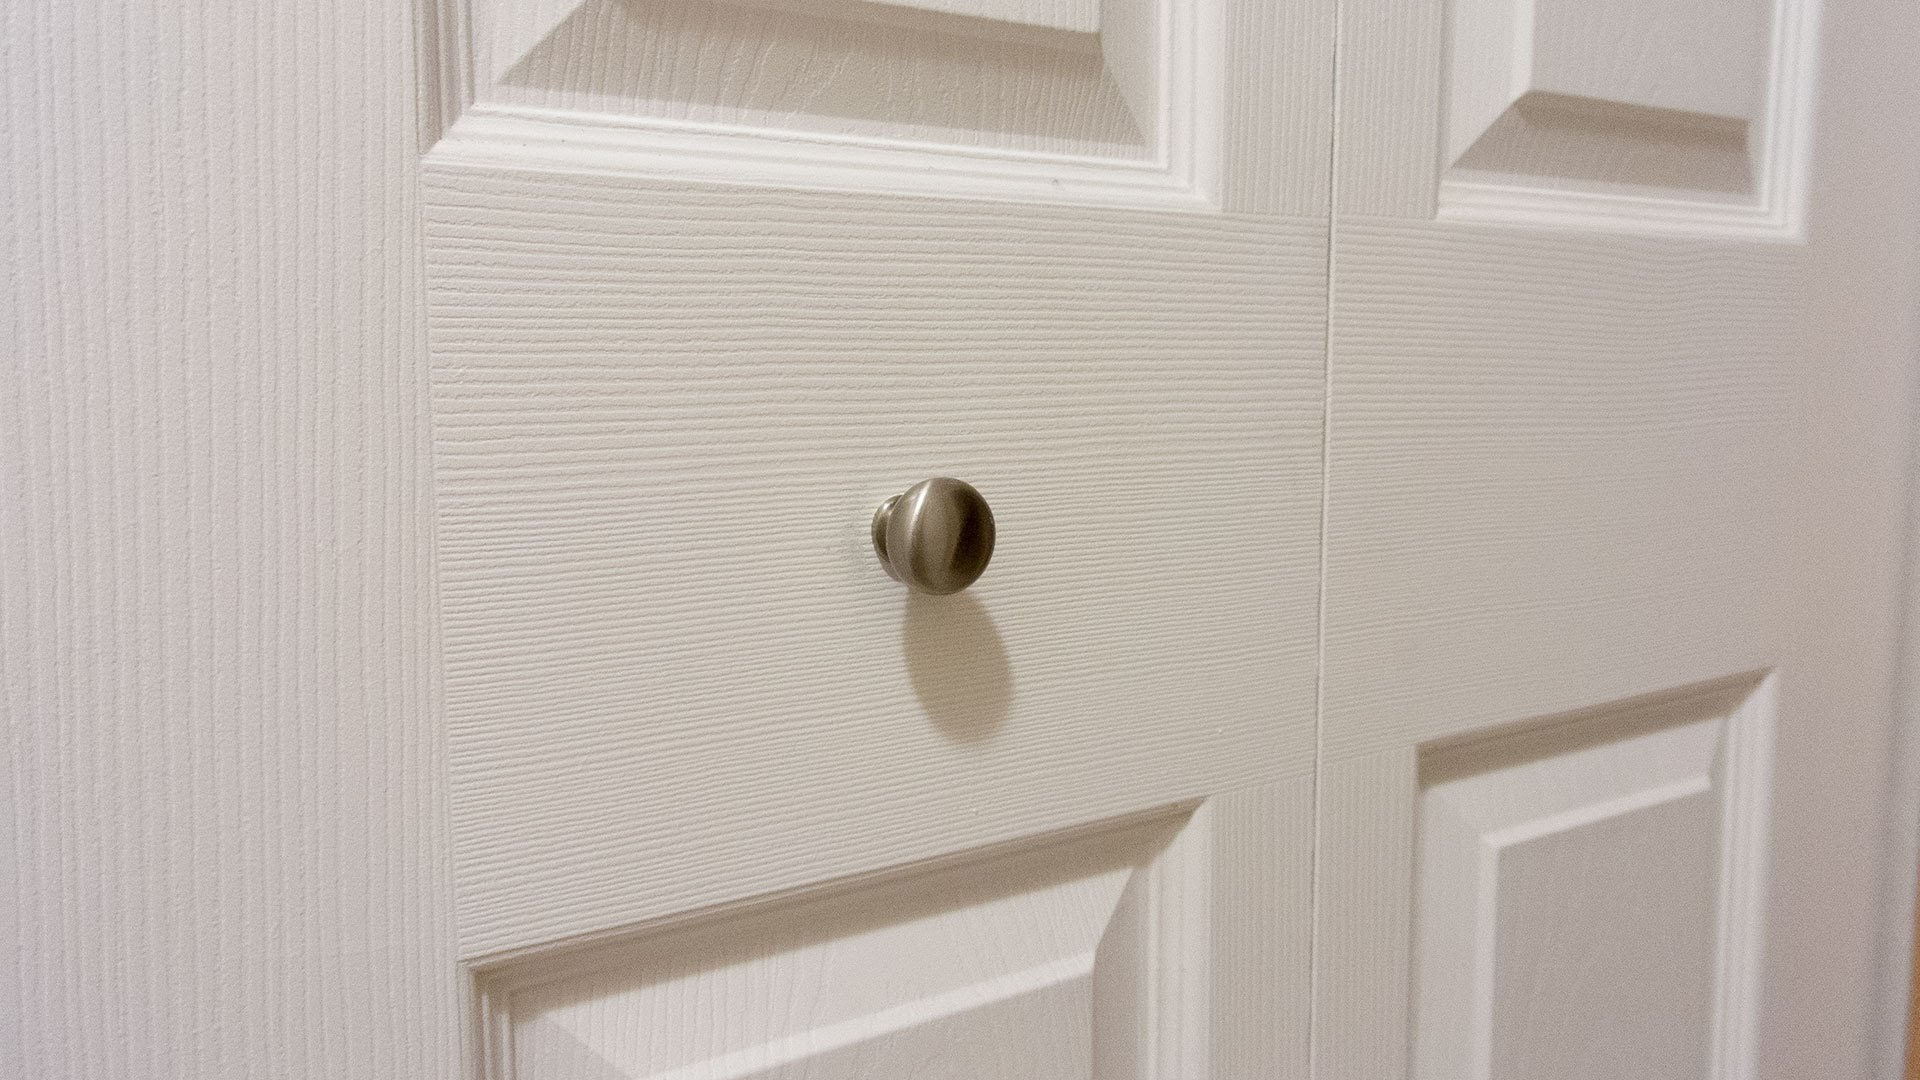 closet door knobs photo - 5